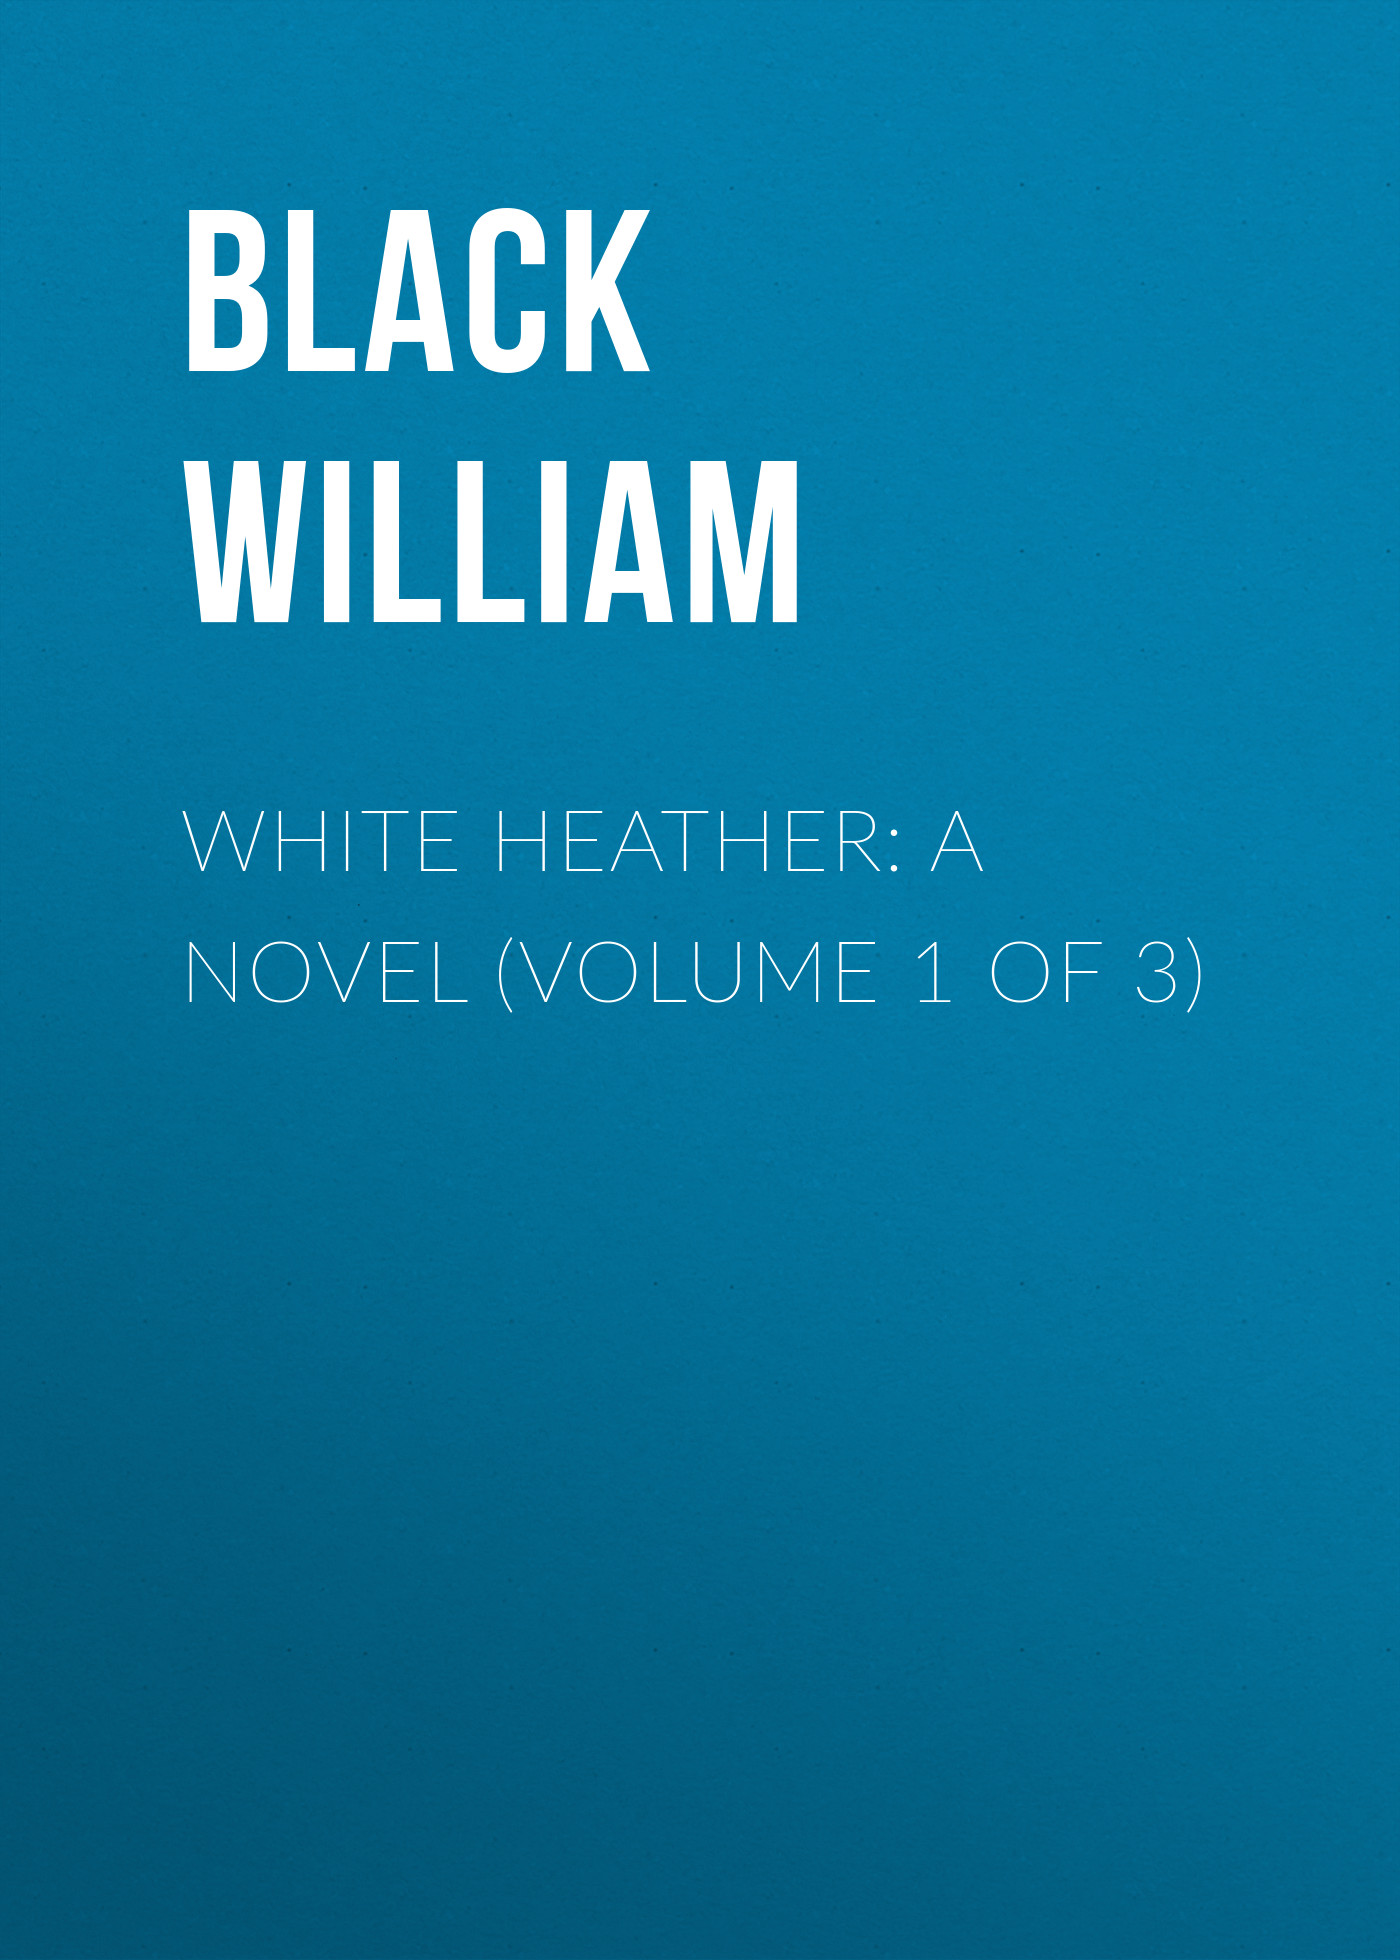 Black William White Heather: A Novel (Volume 1 of 3) mariengof anatoly a novel without lies volume 23